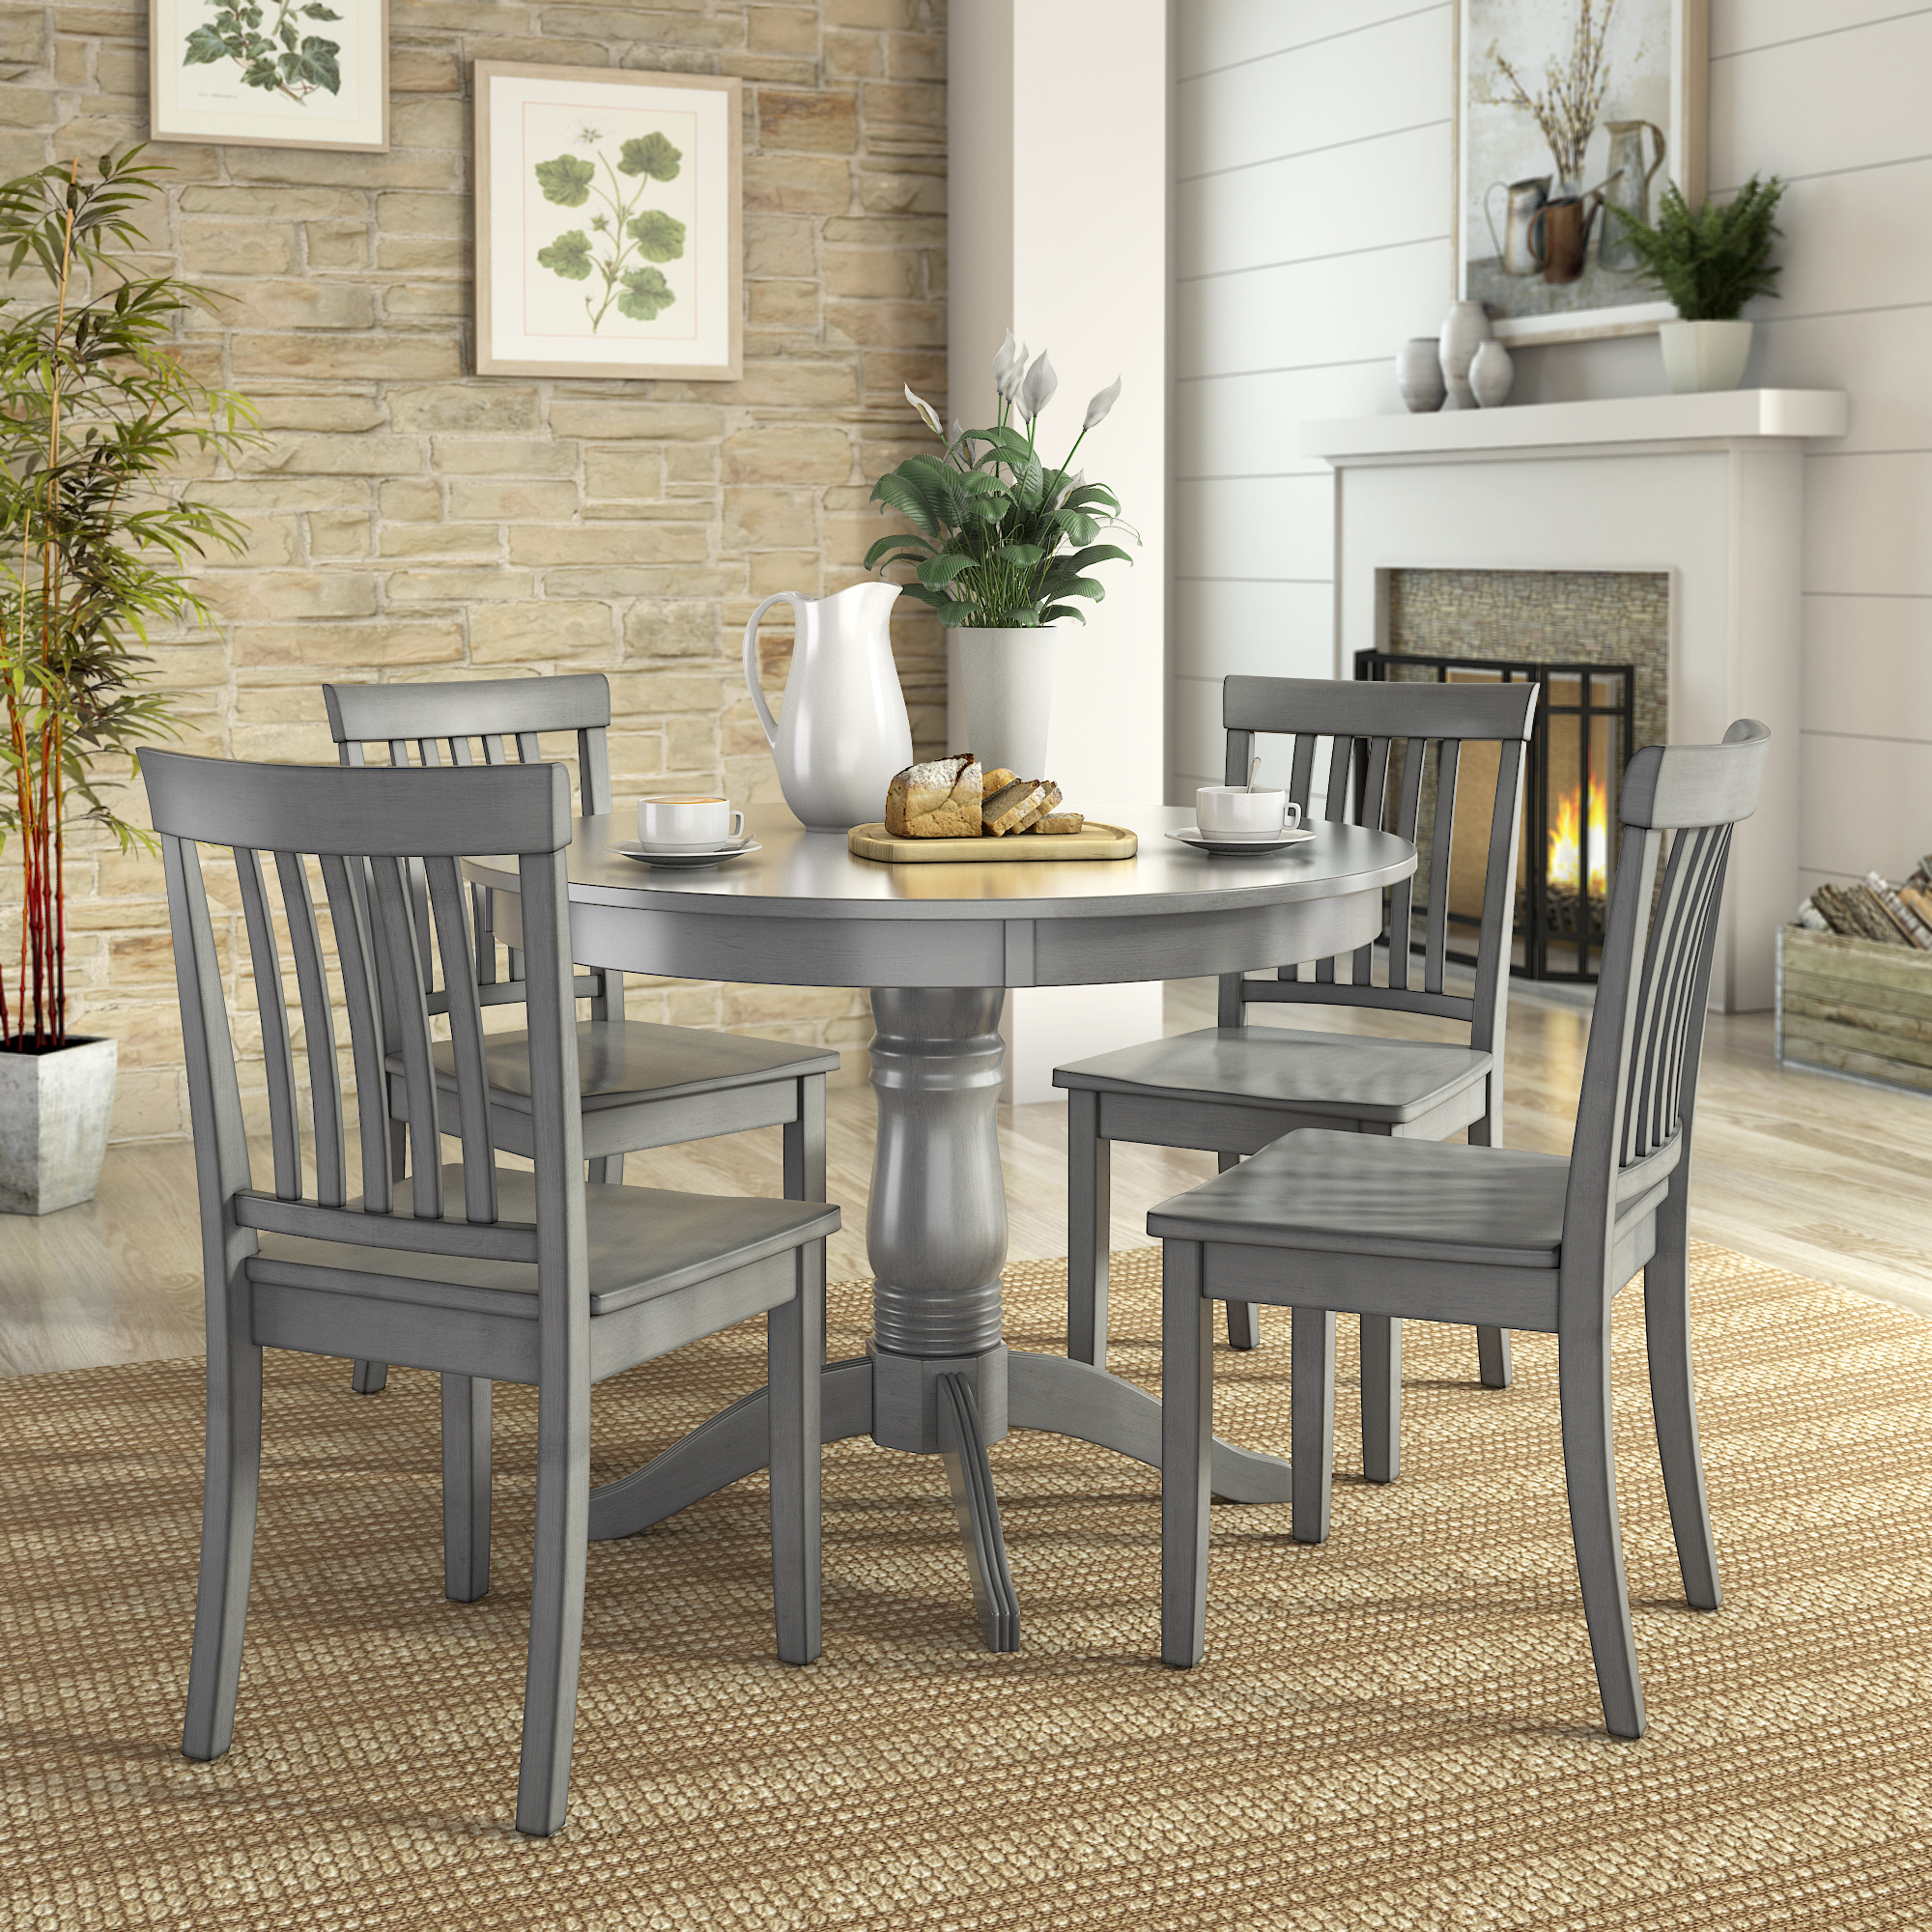 lexington dining chairs dallas cowboys 5 piece set with round table and 4 mission back